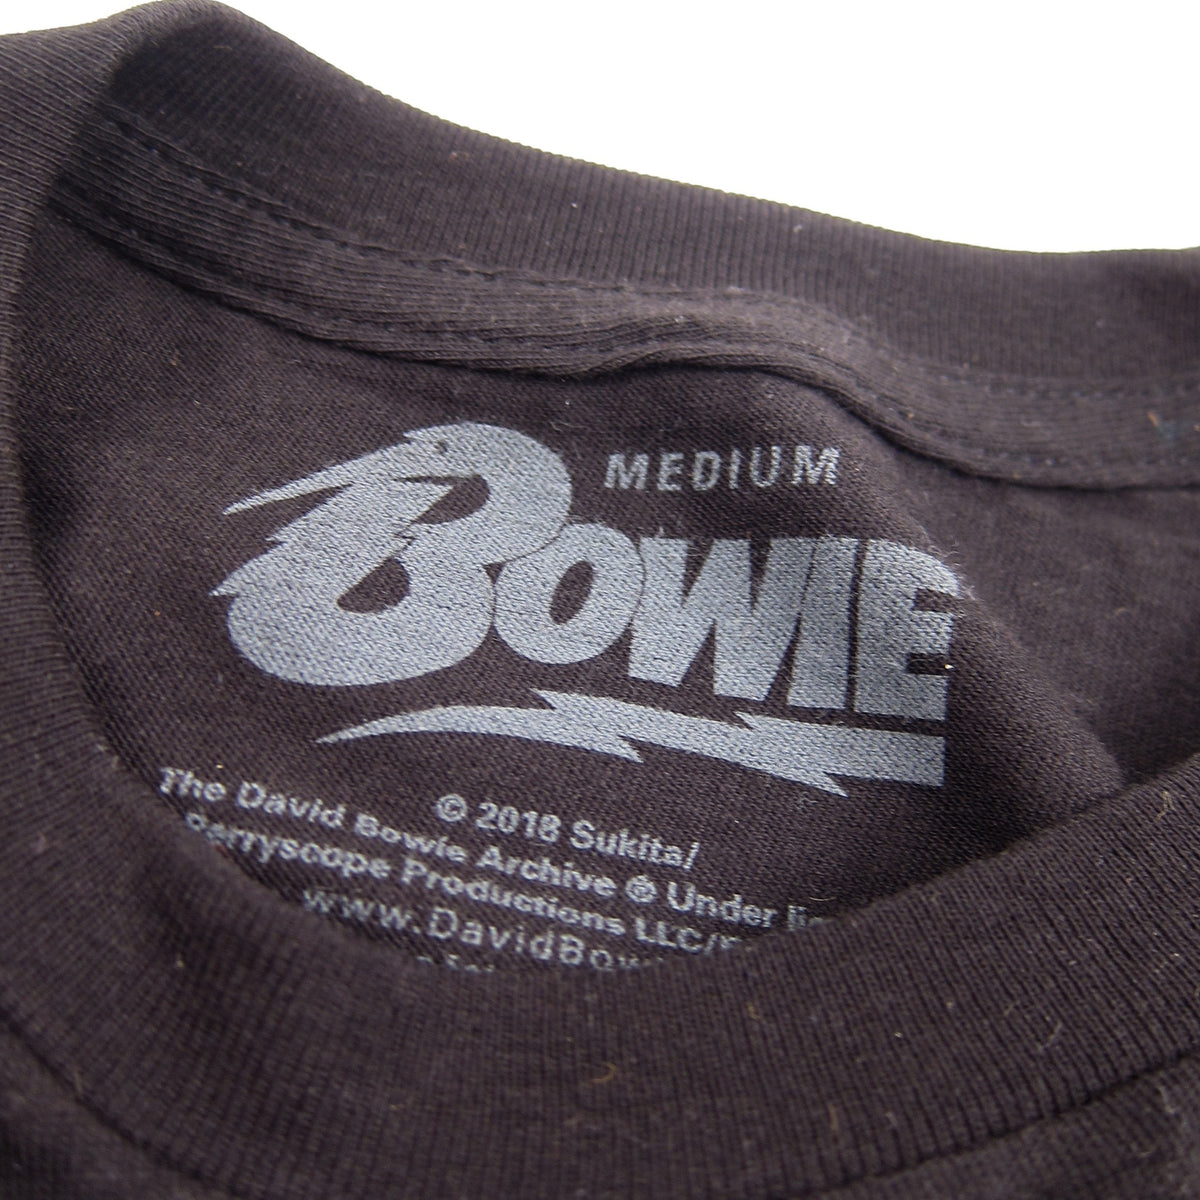 David Bowie: Space Oddity Shirt - Black